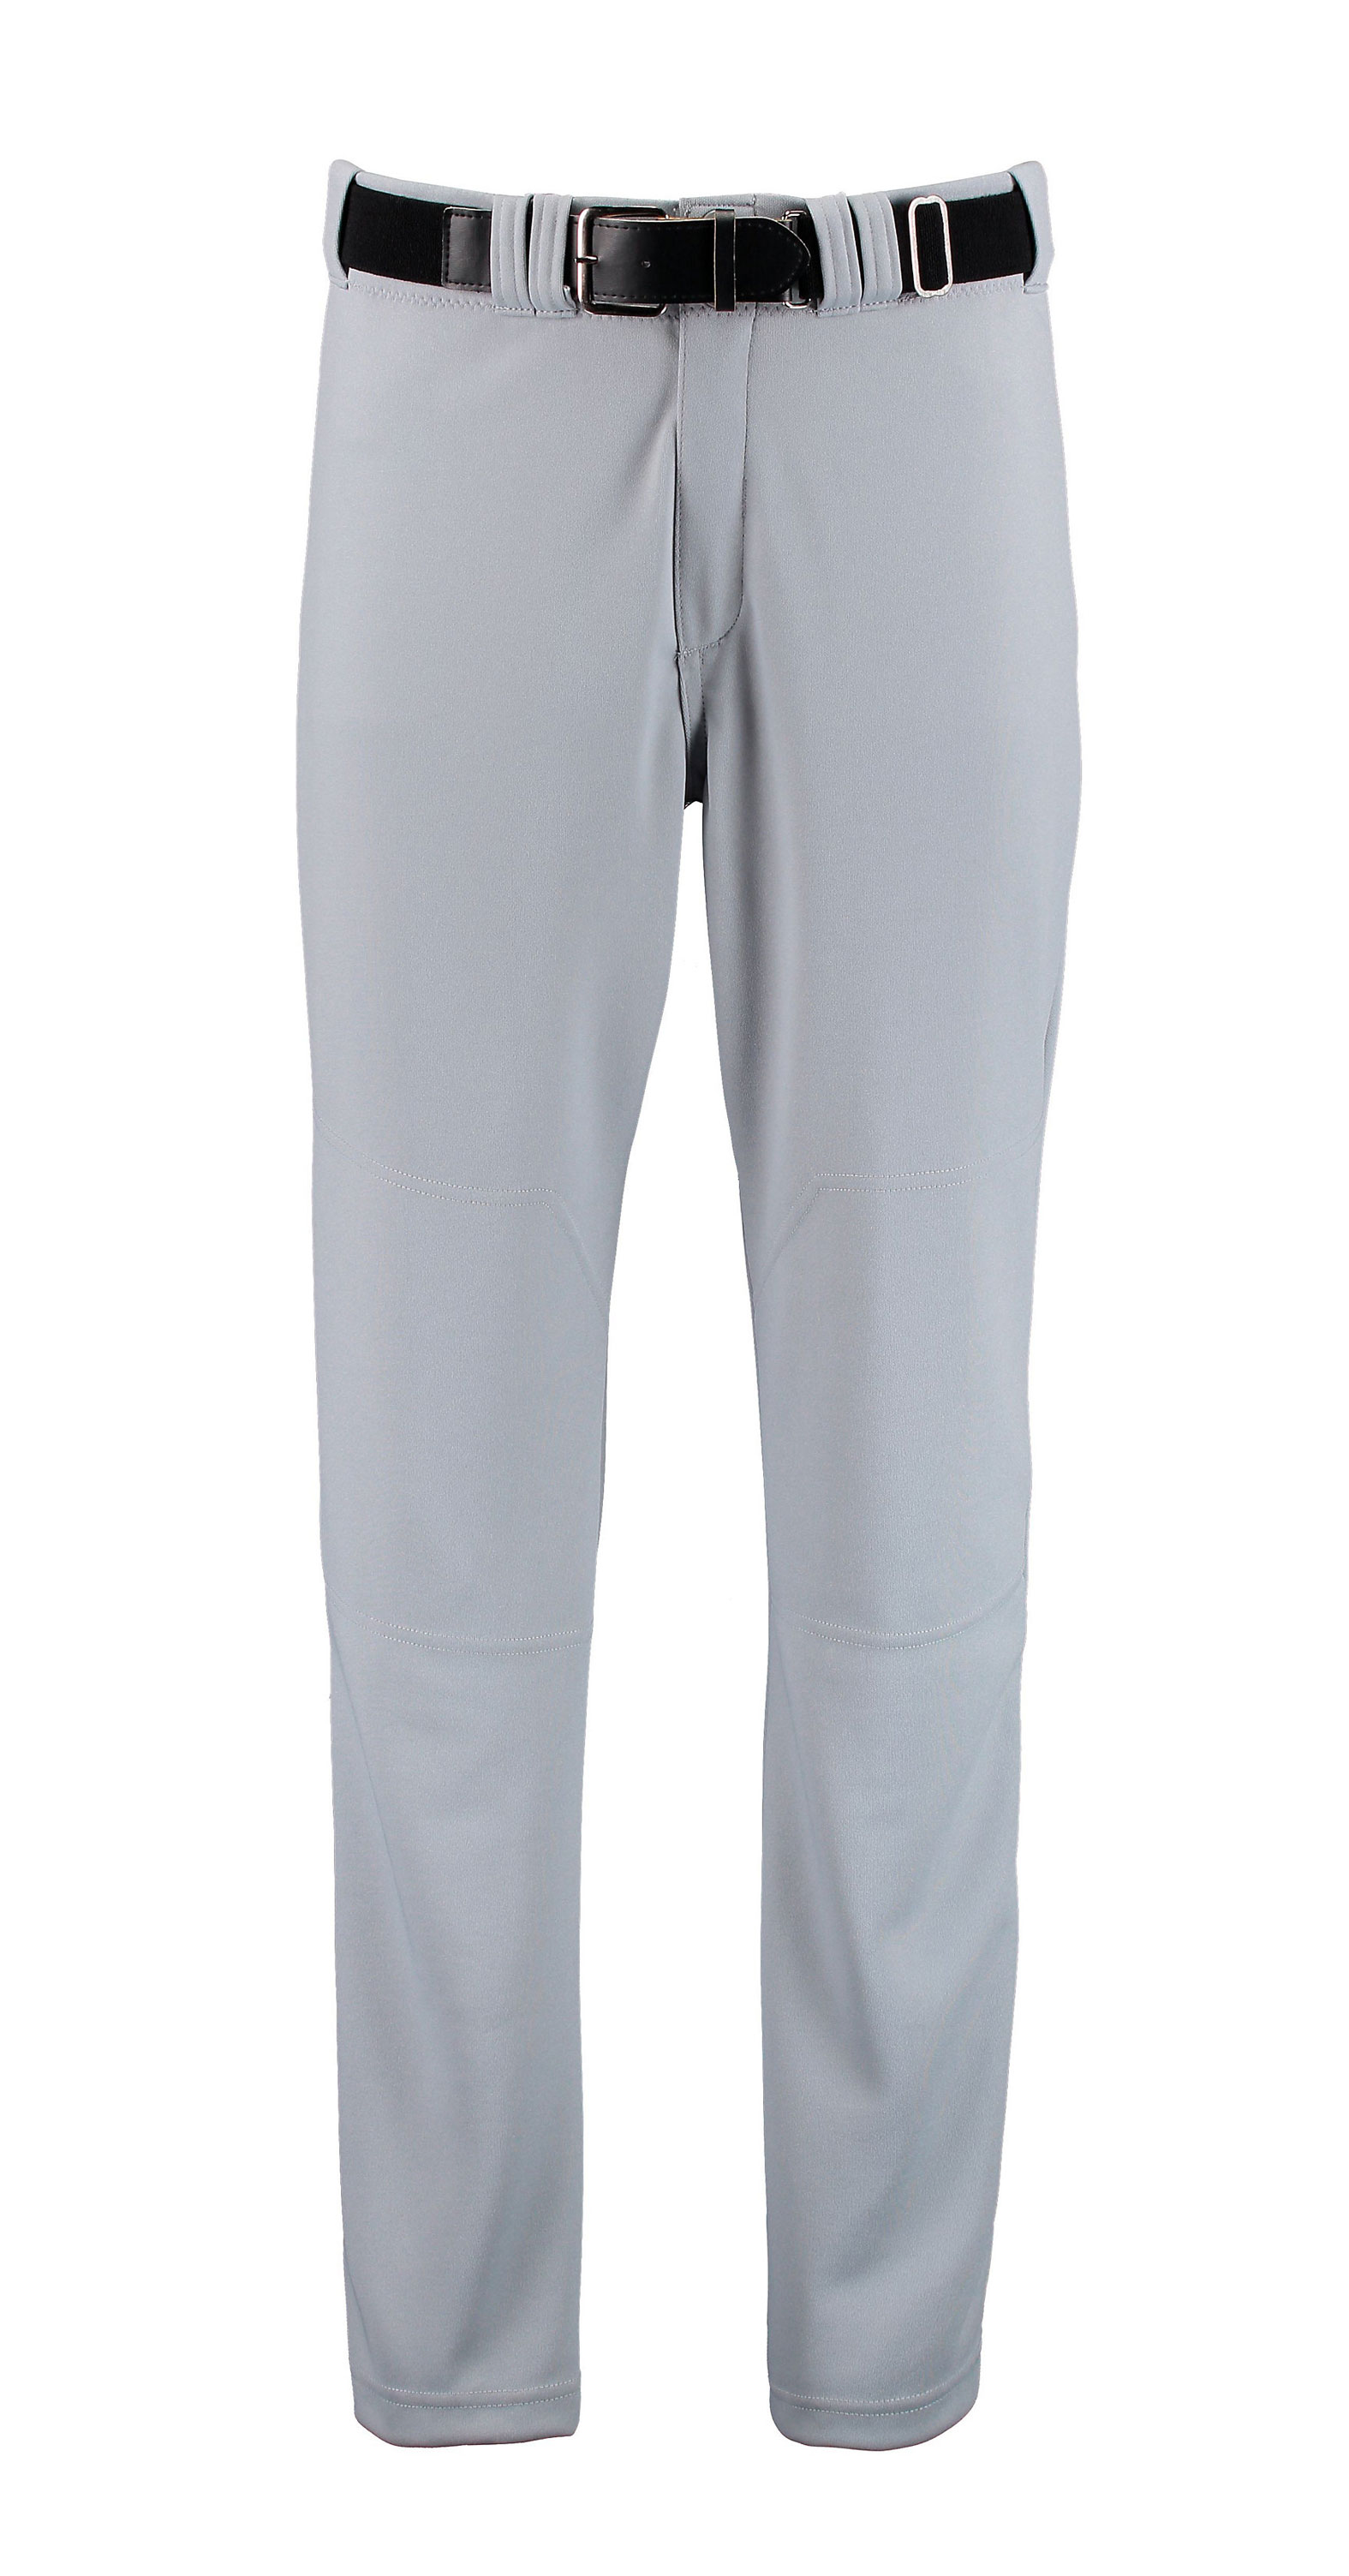 Russell Youth Diamond Fit Series Pant